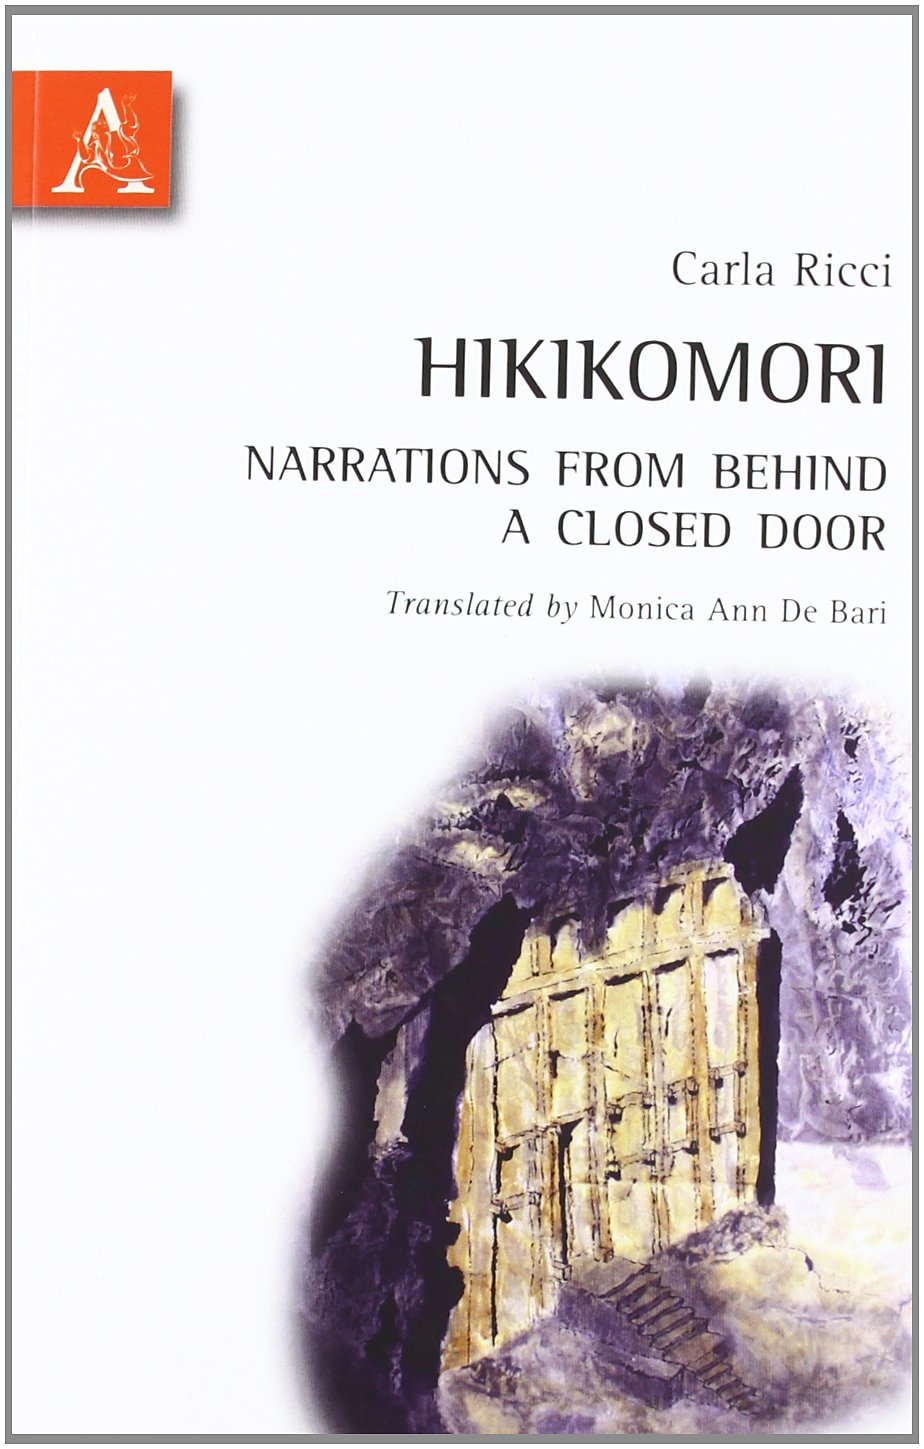 Hikikomori. Narrations from behind a closed door